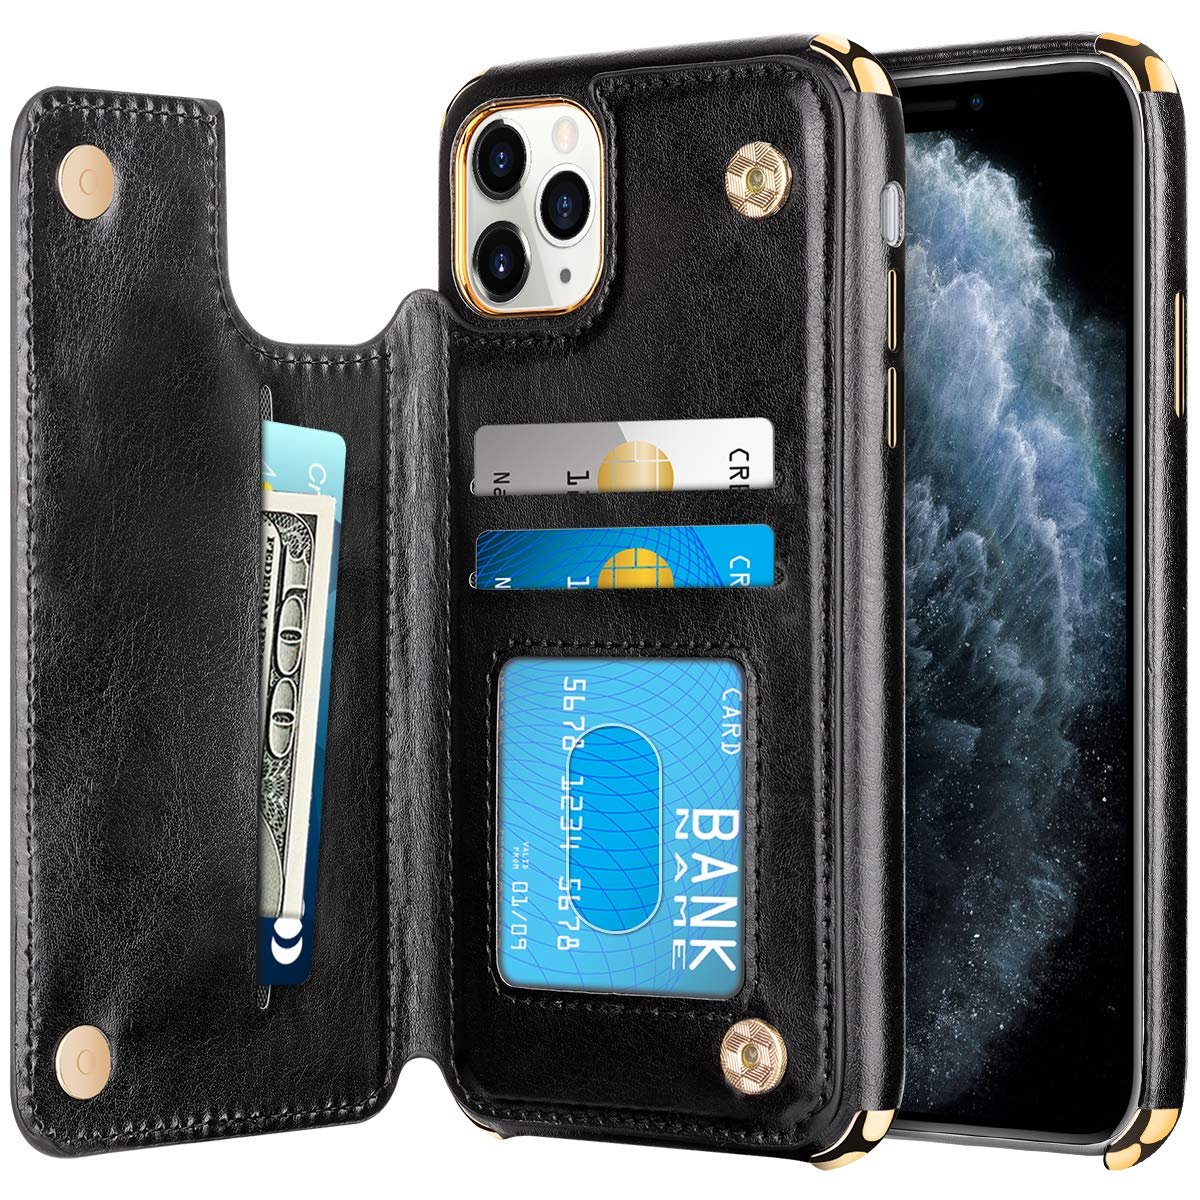 HianDier Wallet Case for iPhone 11 Pro Max Card Holder Case Double Magnetic Clasp Flip Cover Soft PU Leather Kickstand Dual Layer Shockproof Wallet Case for 2019 6.5 Inch iPhone 11 Pro MAX, Black